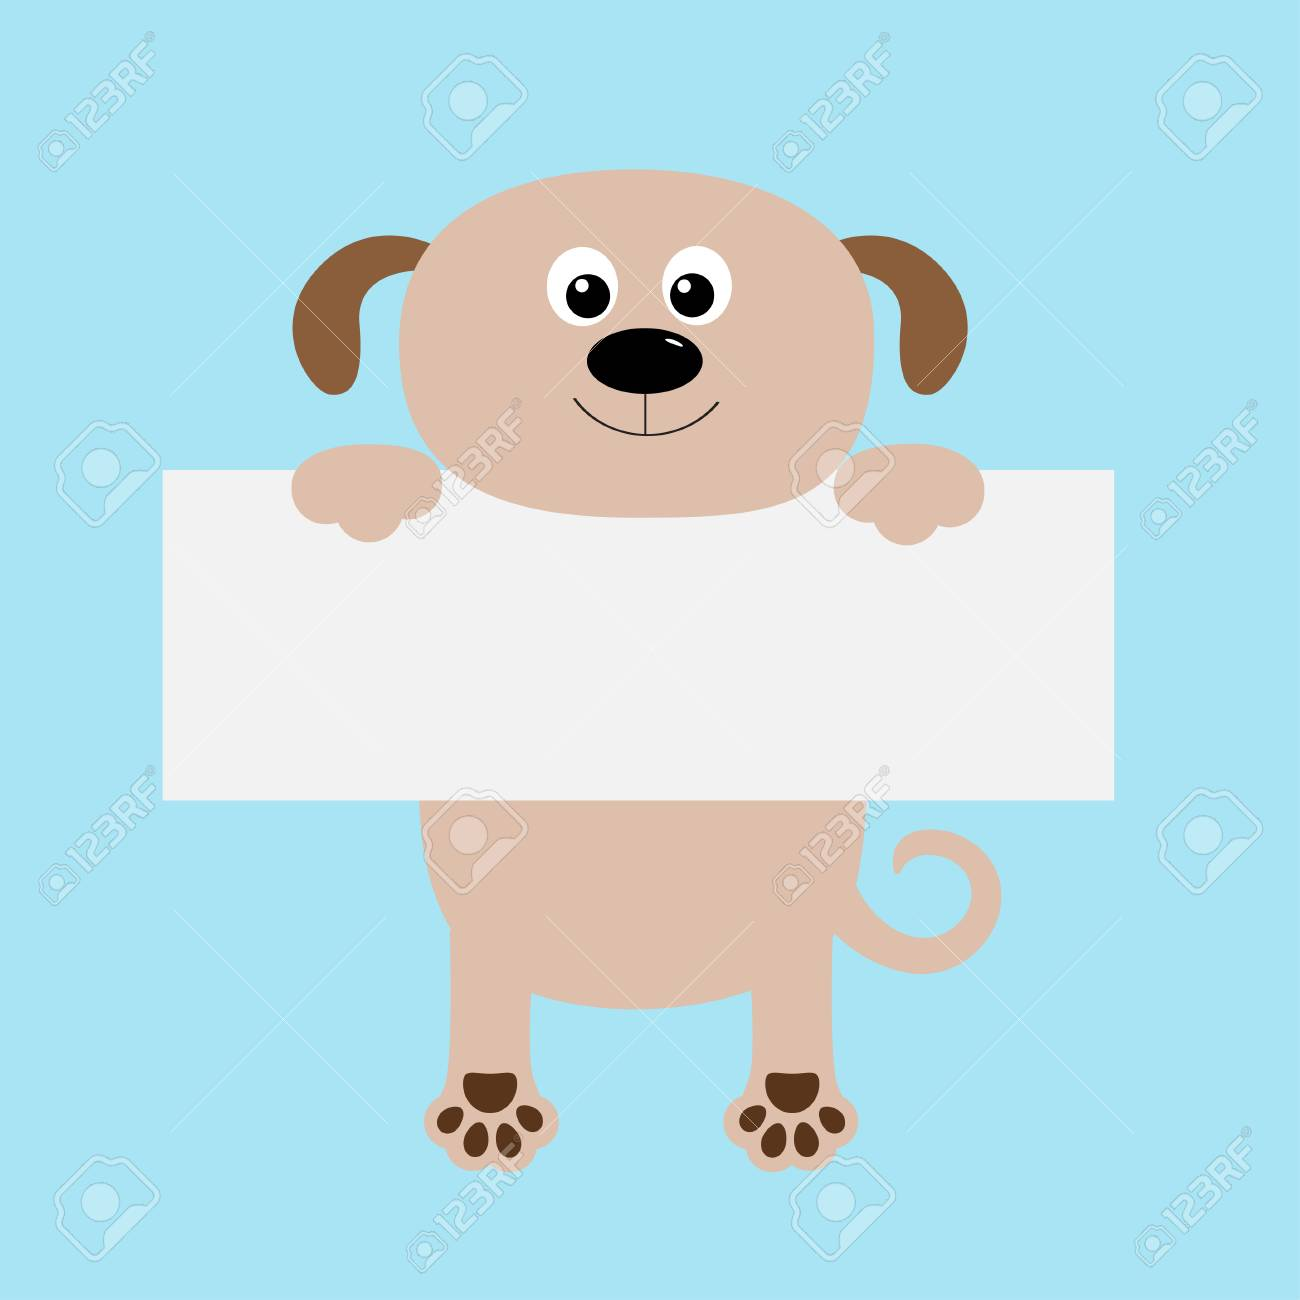 funny dog hanging on paper board template big eyes kawaii puppy